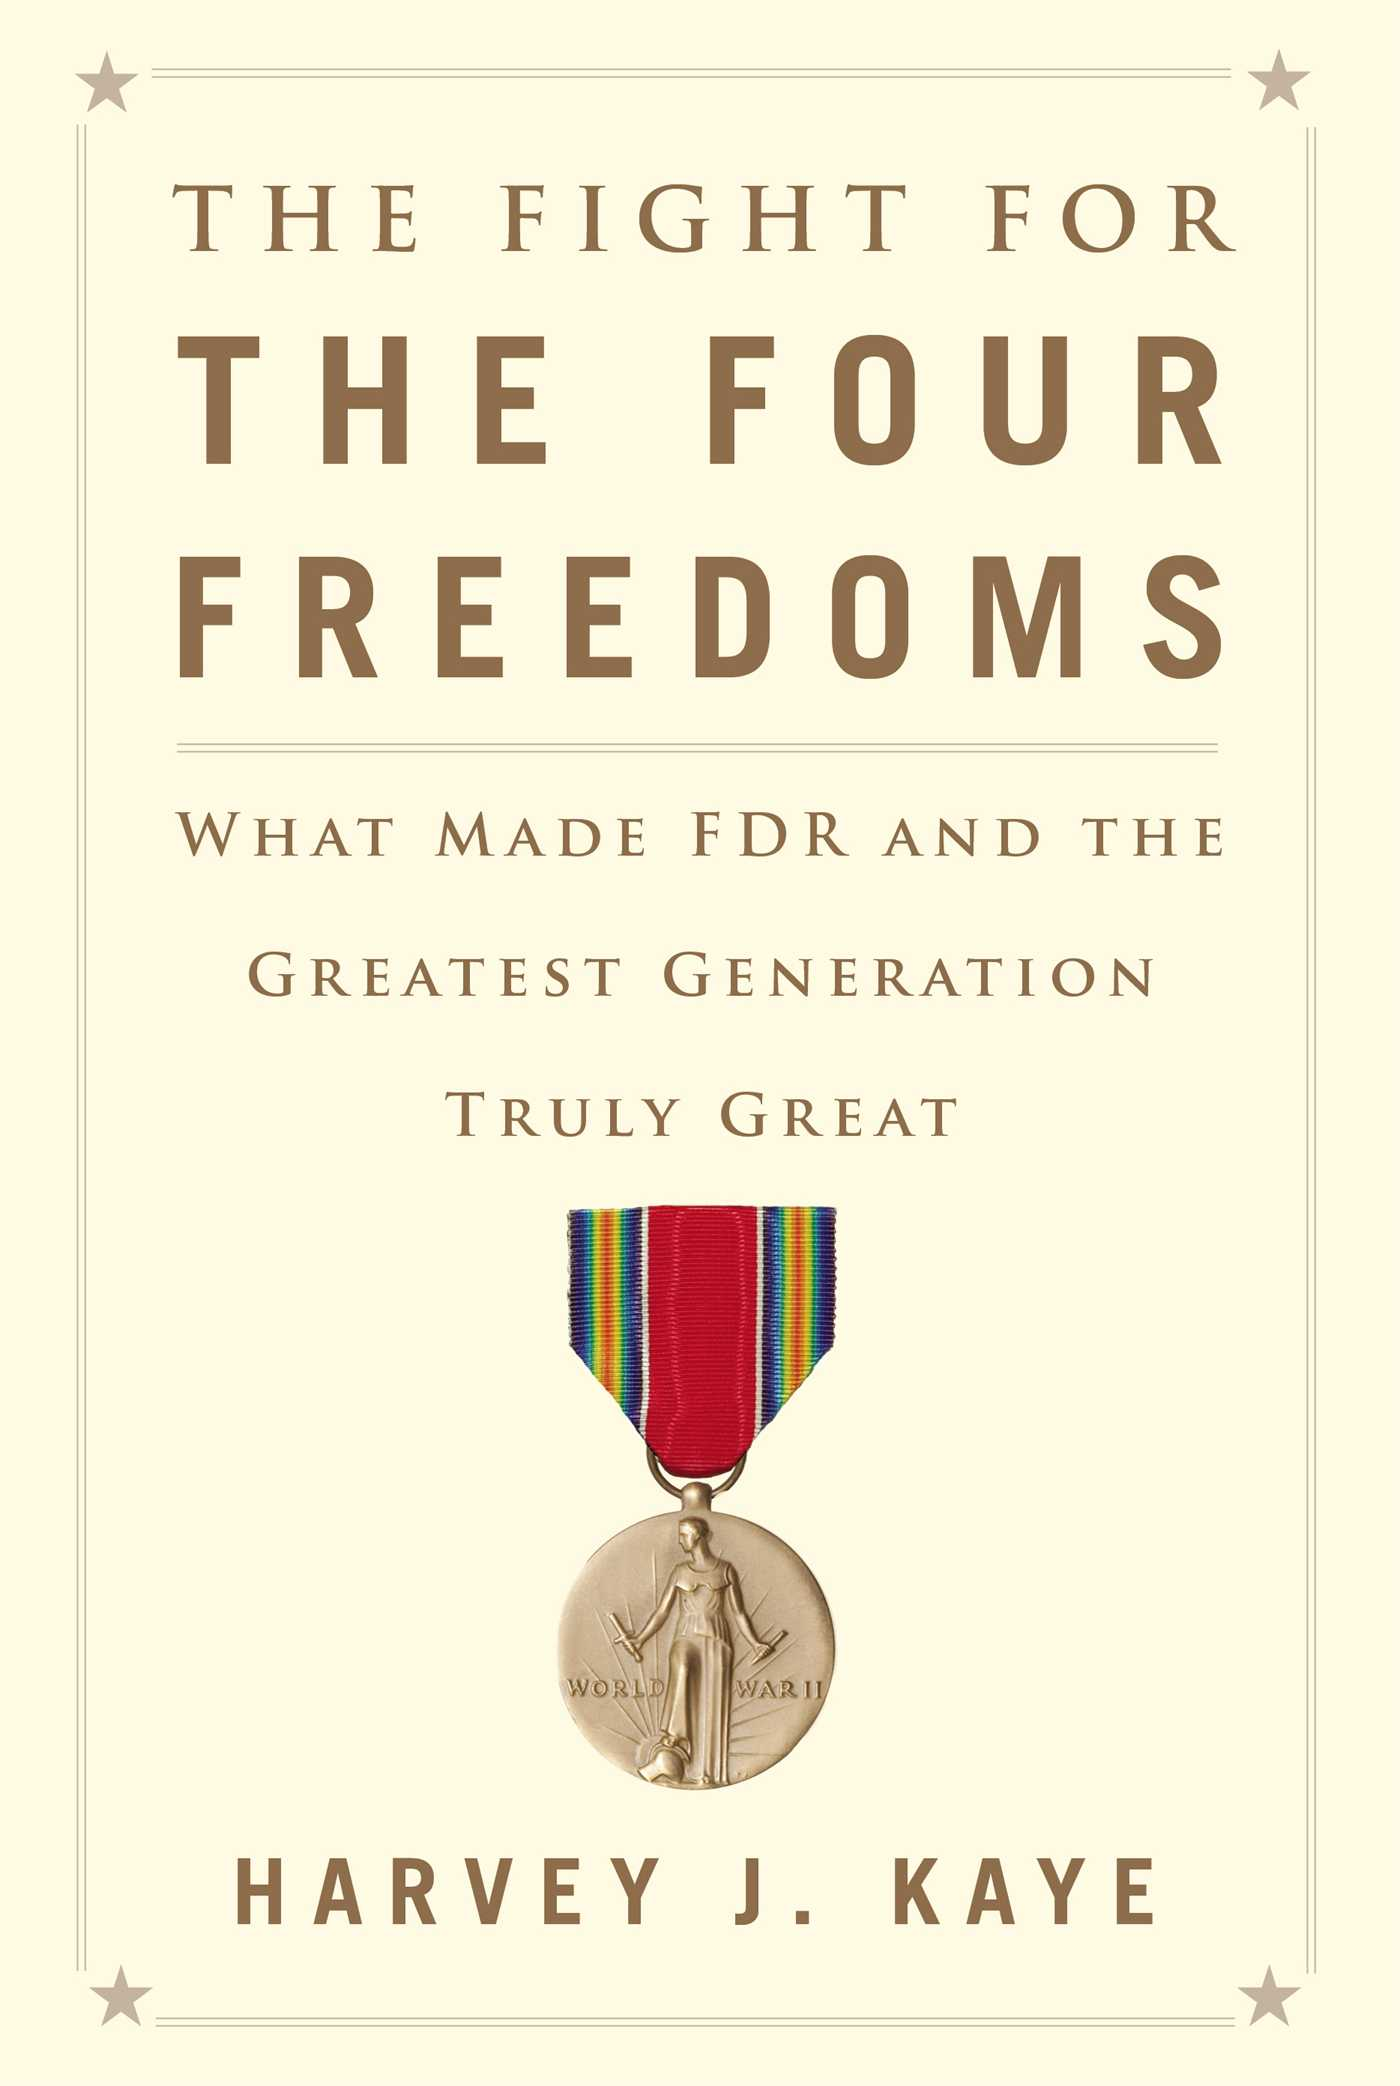 Fight-for-the-four-freedoms-9781451691436_hr